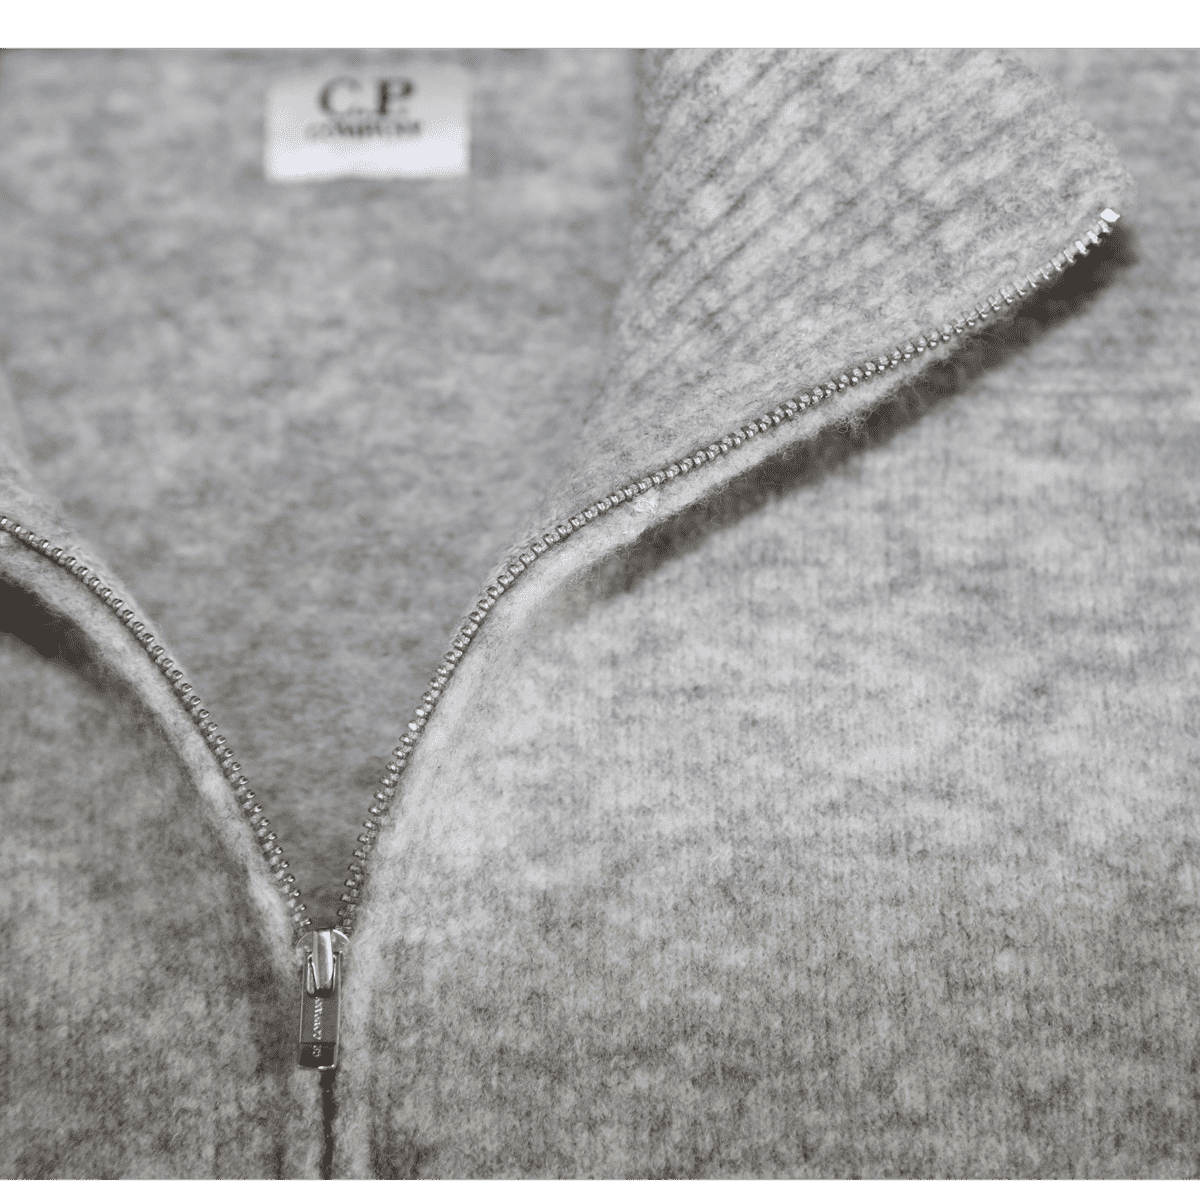 Cabinero Stiles Herrenmode Onlineshop C.P.Company Cardigan-Strickjacke in Grau #03CMKN166A-005103A AW17-18 2